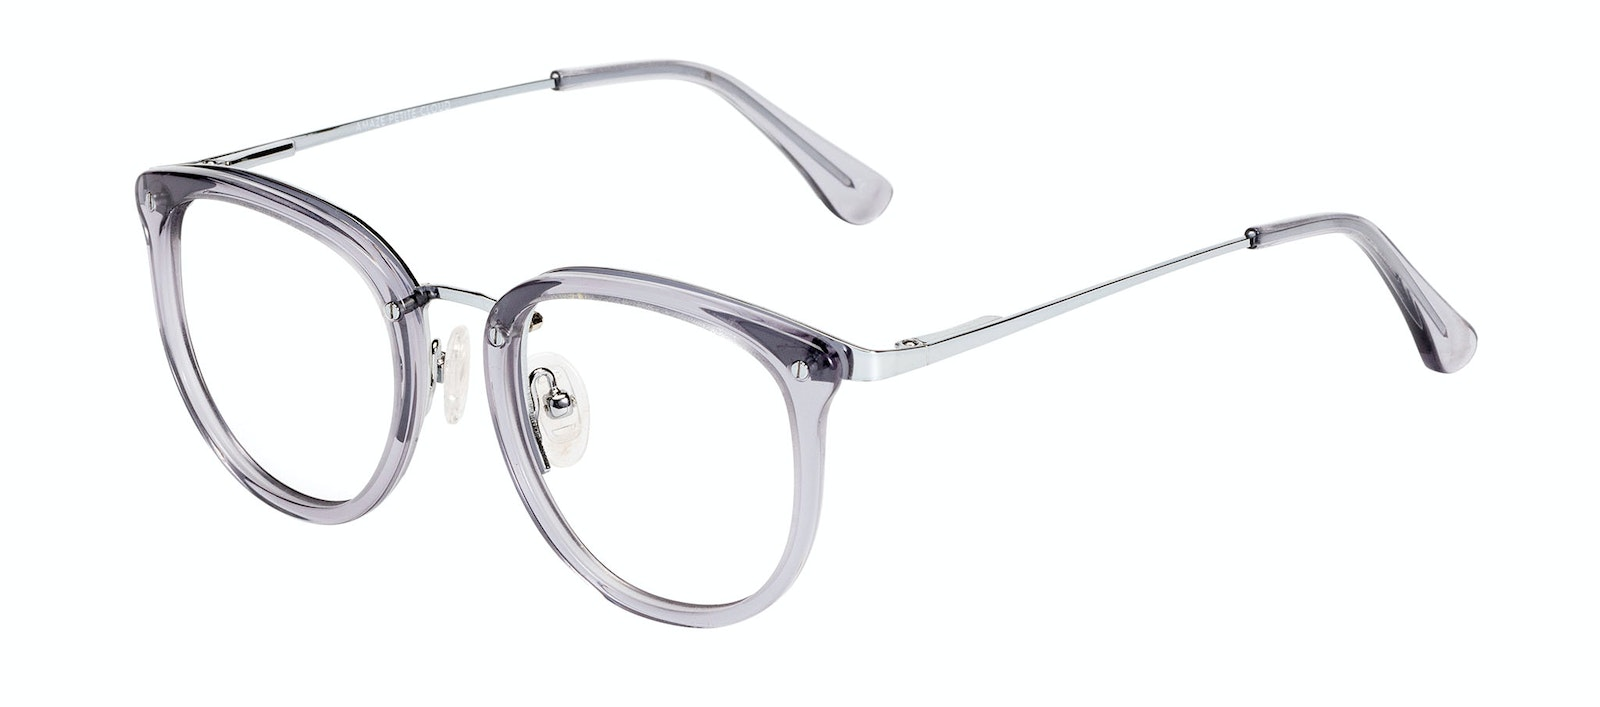 Affordable Fashion Glasses Round Eyeglasses Women Amaze Petite Cloud Tilt